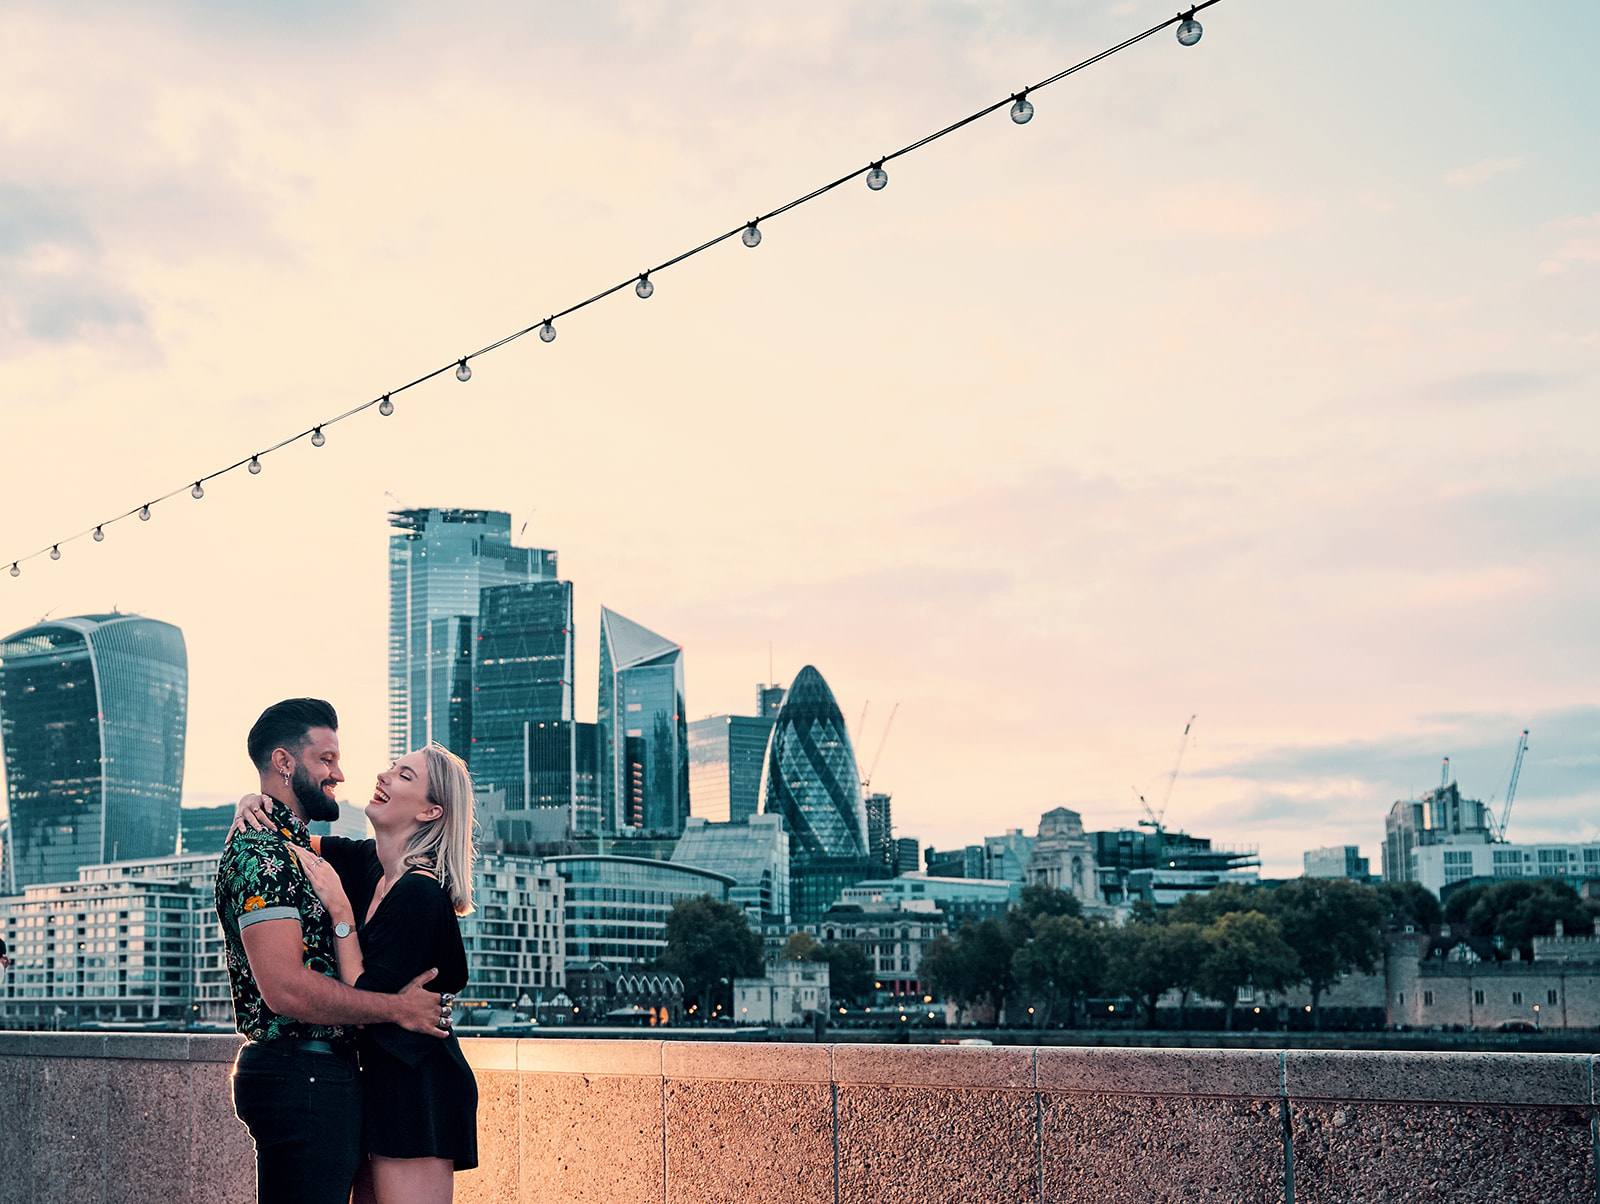 Picture against the London skyline | Shot from south of the river thames just outside Mayor's office.